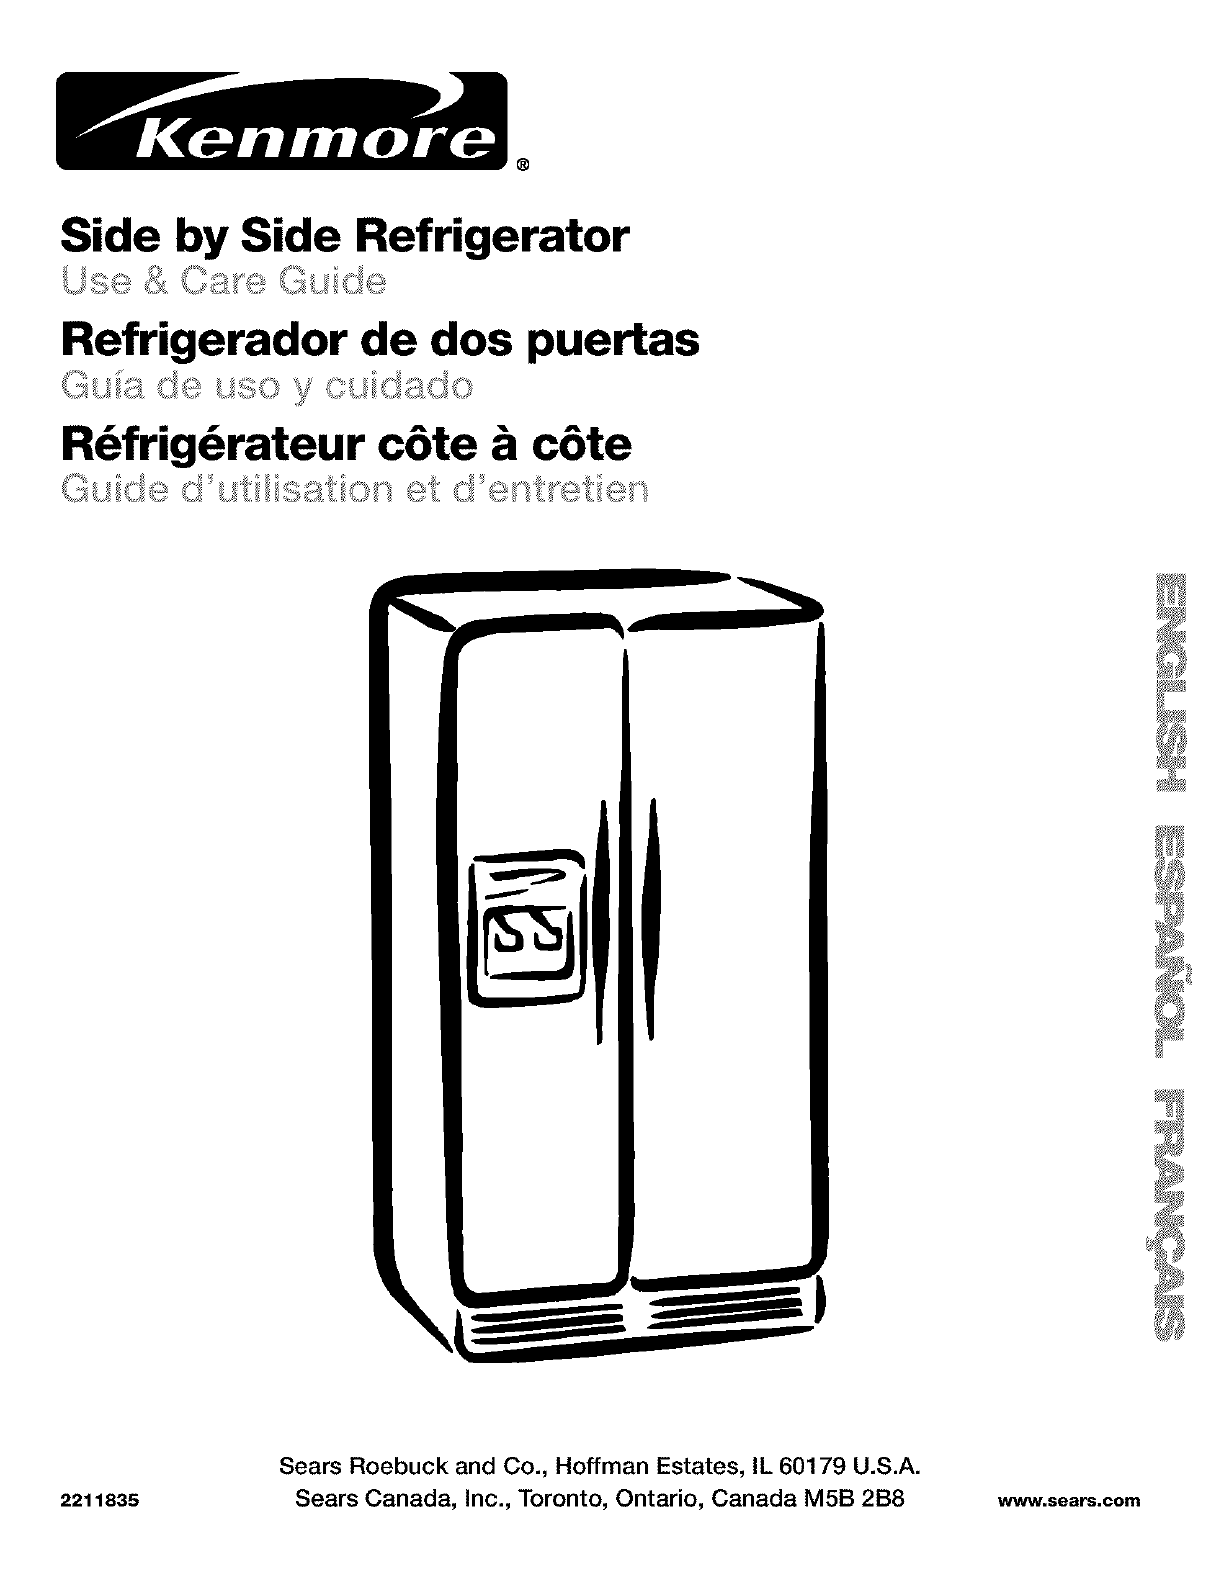 7f7c209c 3a82 4c01 aecb 31a71b630337 bg1 kenmore refrigerator 106 user guide manualsonline com kenmore side by side refrigerator wiring diagram at nearapp.co